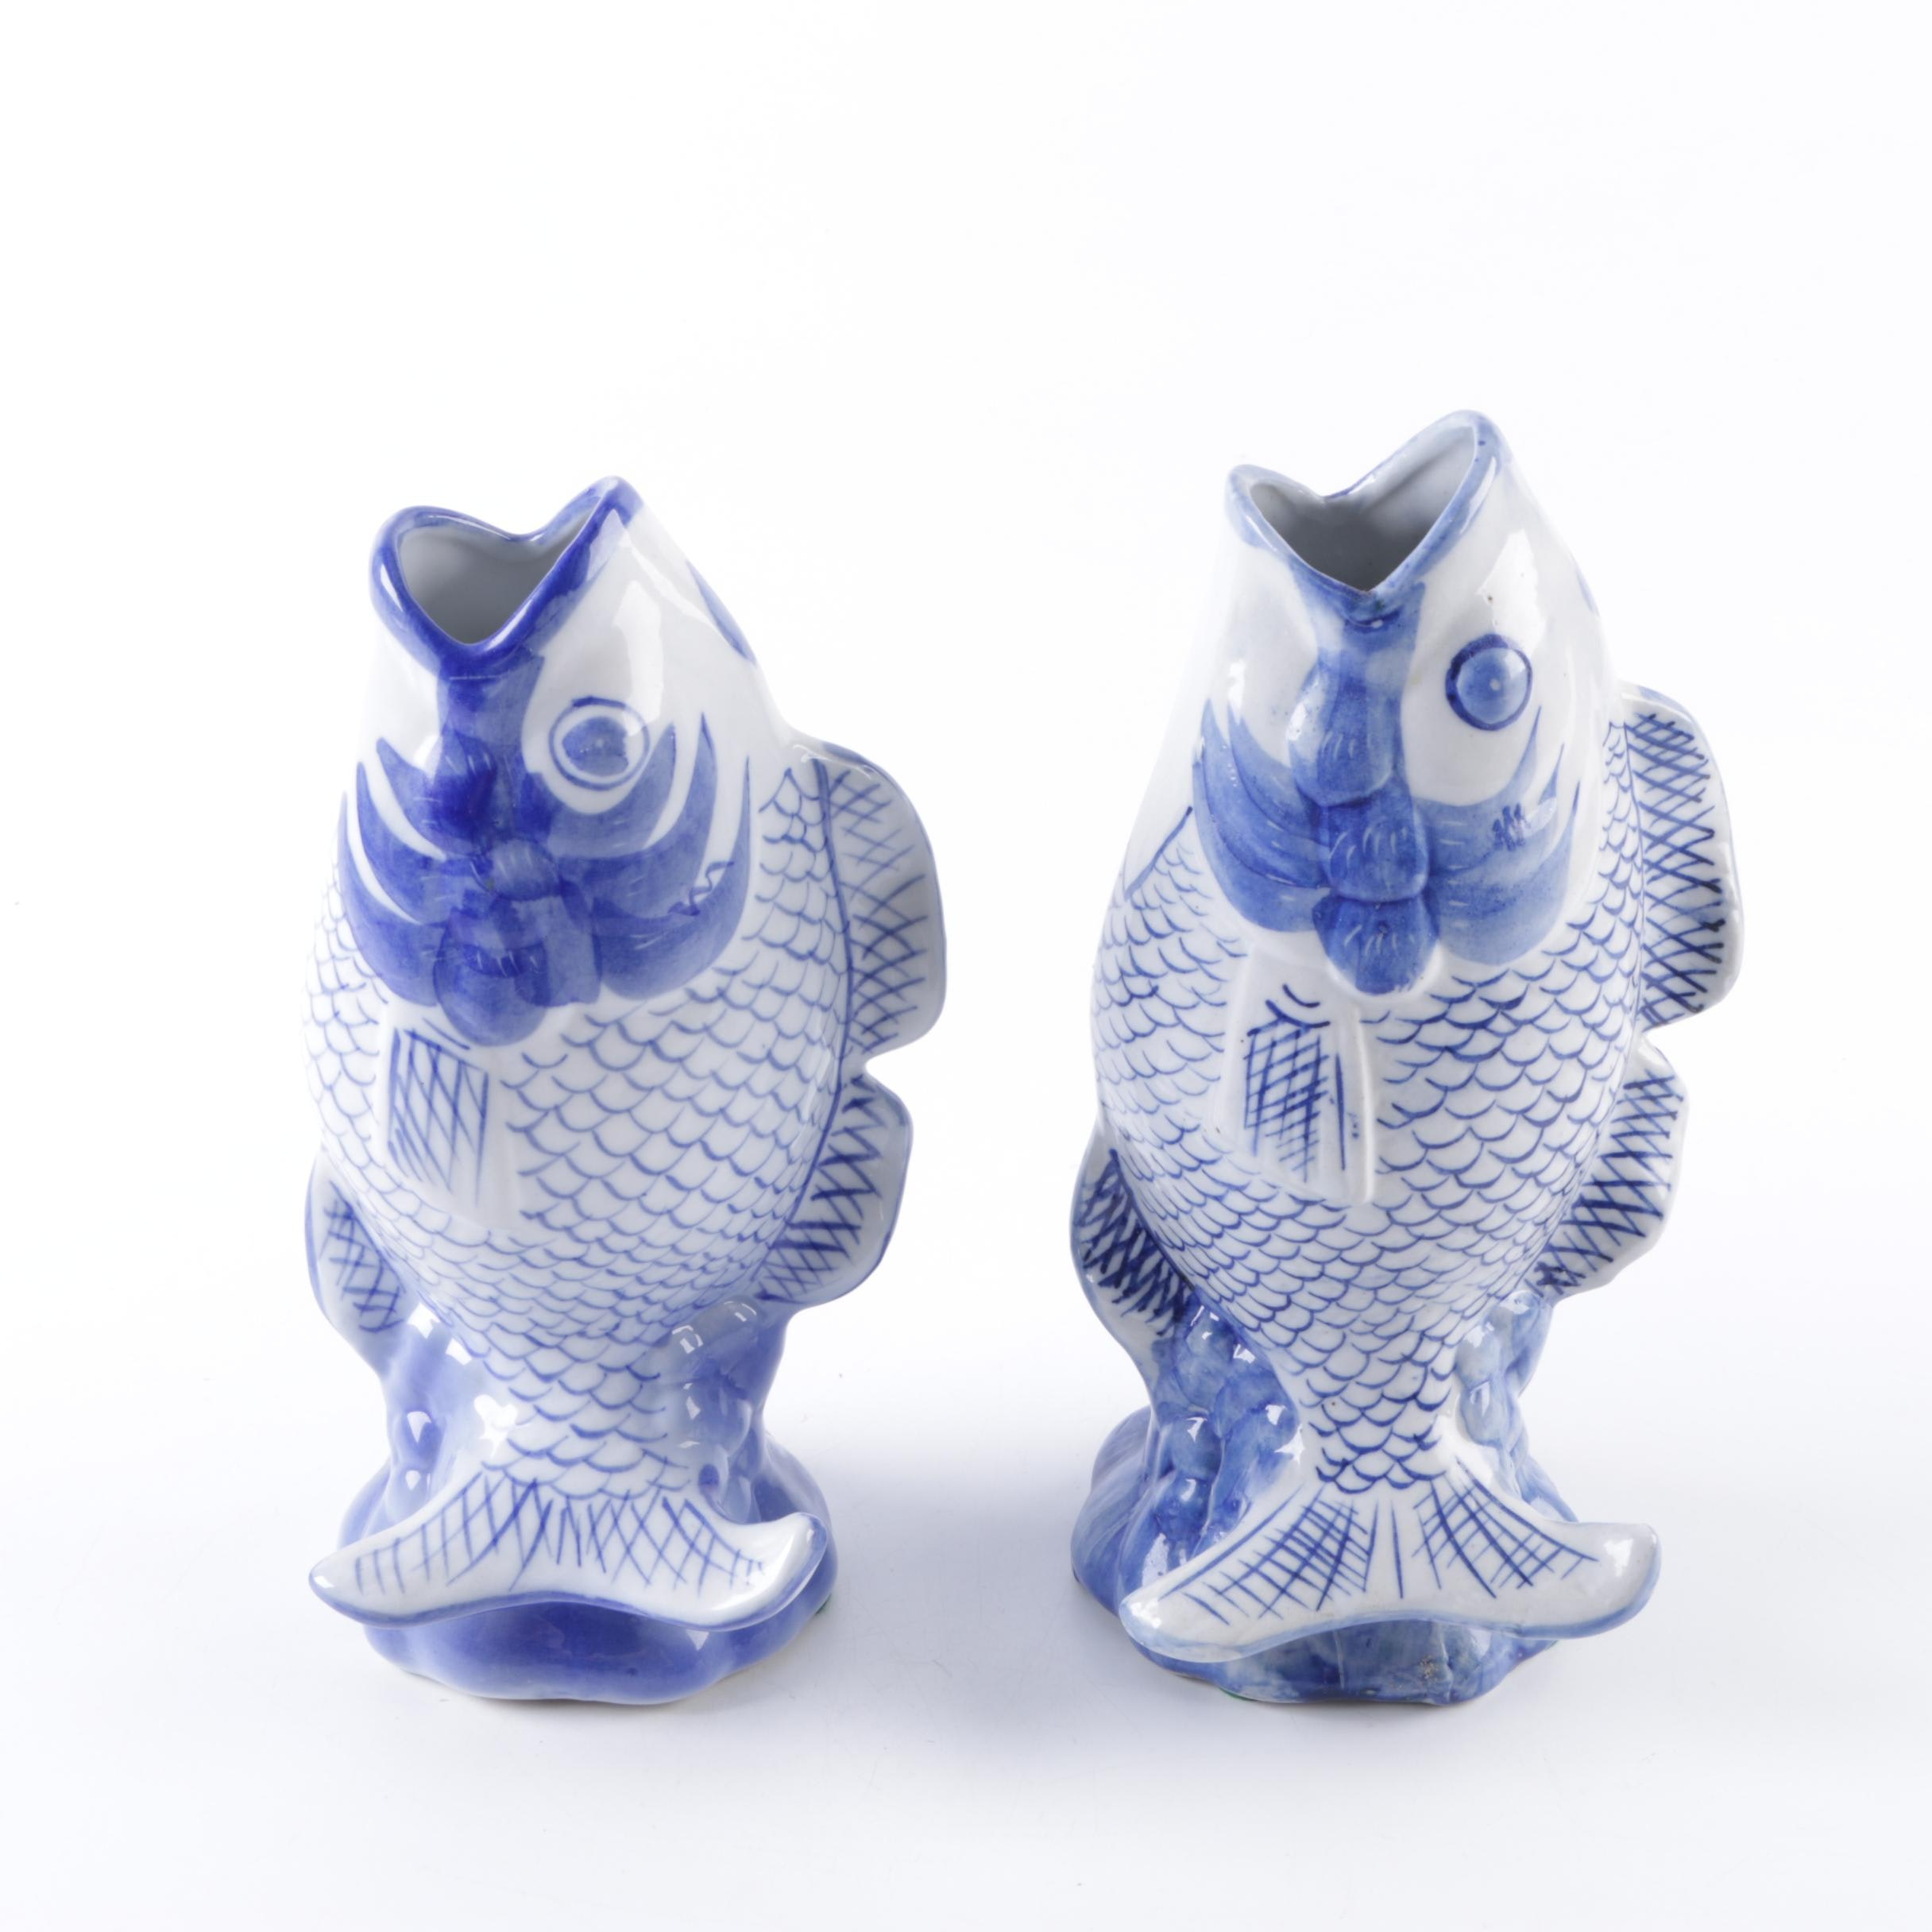 A Pair of Asian Inspired Fish Vases